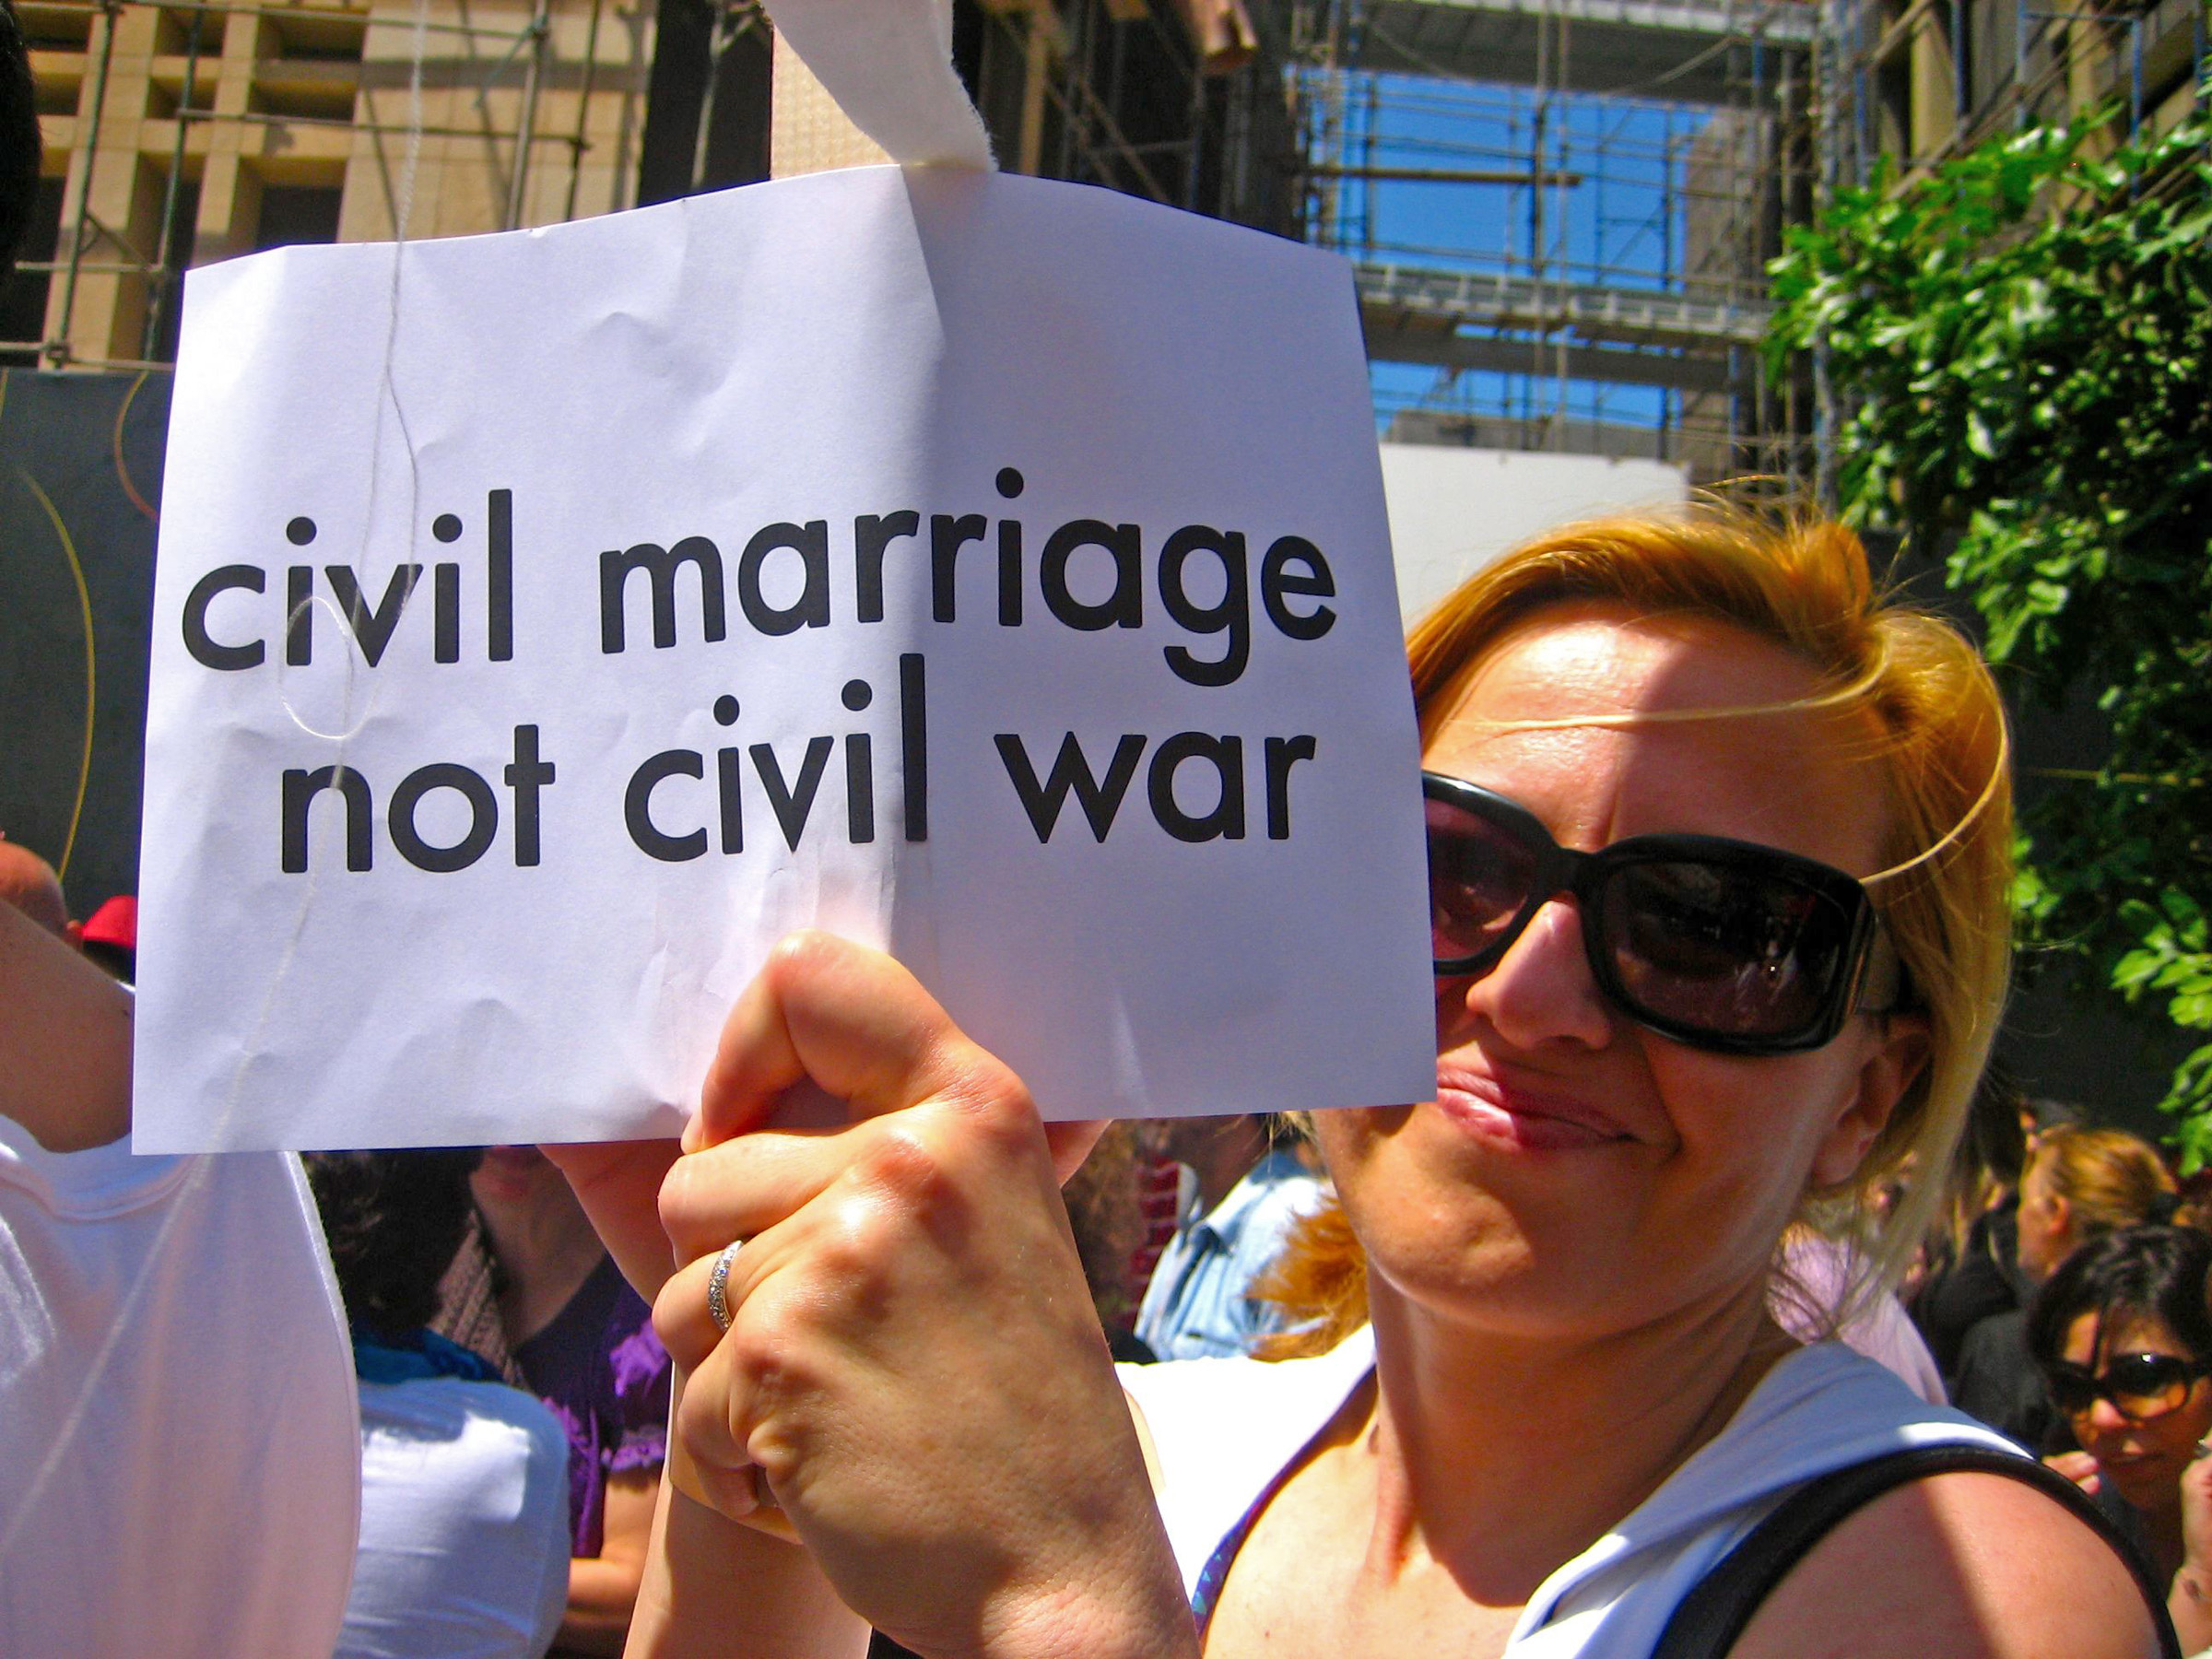 Demonstrating for equal citizenship and equal rights for men and women in Beirut, Lebanon